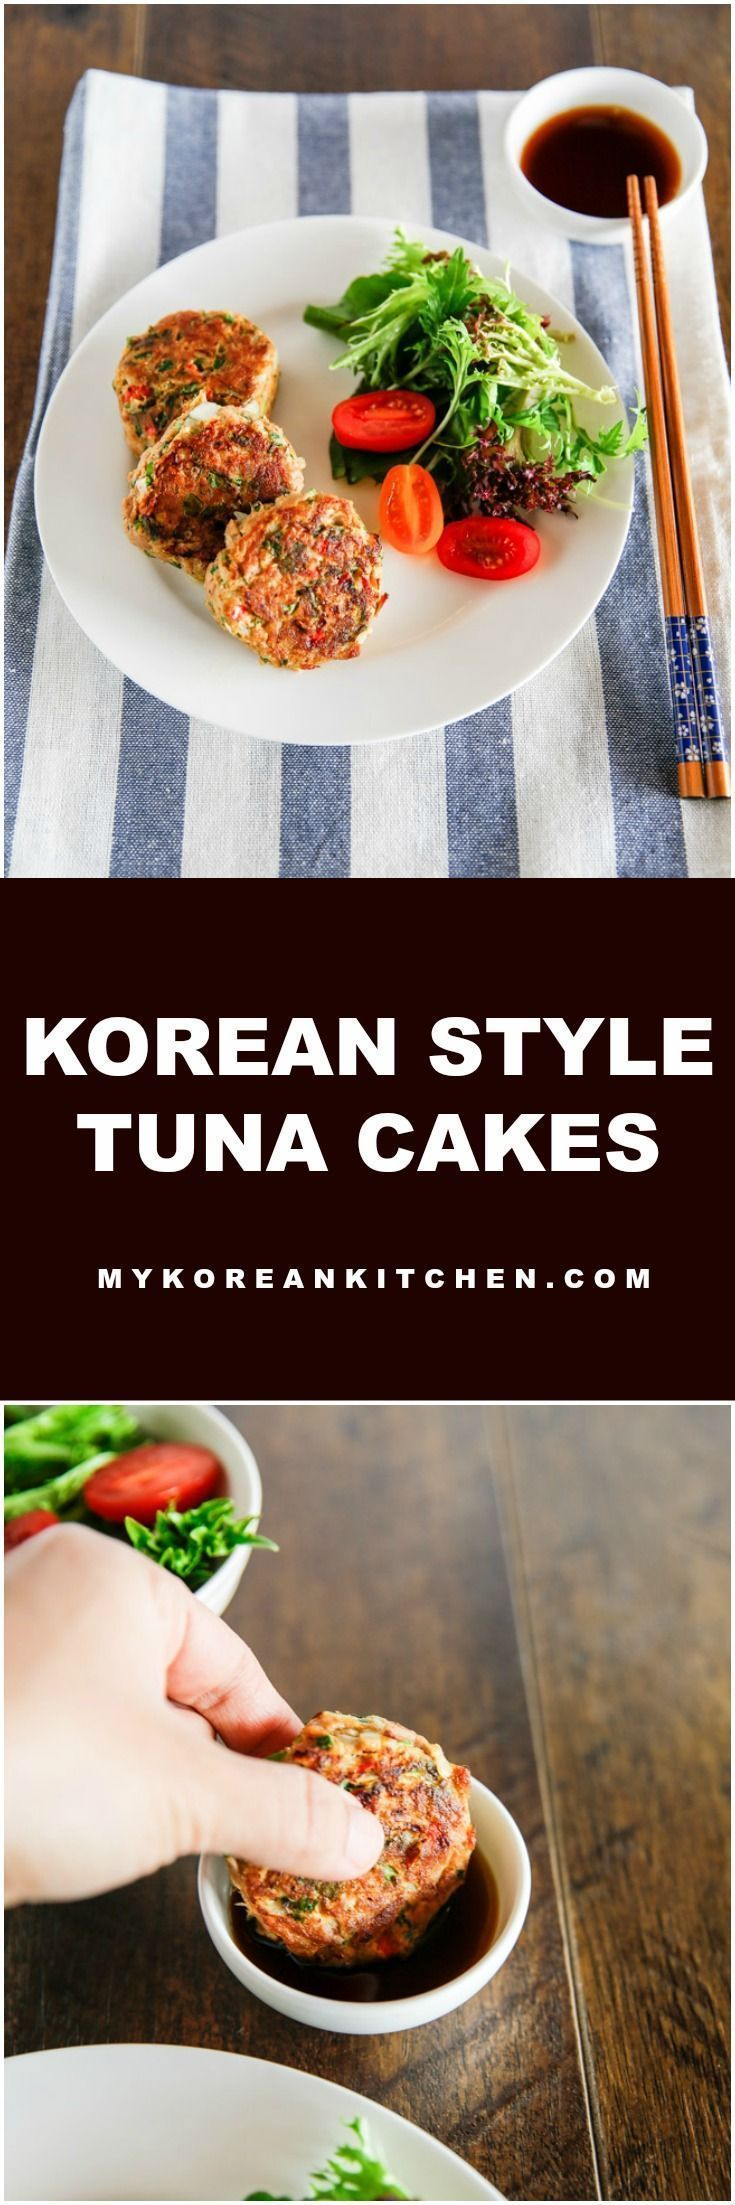 Healthy recipes | Fish meals & dishes - recipes and ideas | How to make Korean style tuna cakes. They are easy to make and very delicious to eat, particularly when served with Korean sweet tangy soy sauce!